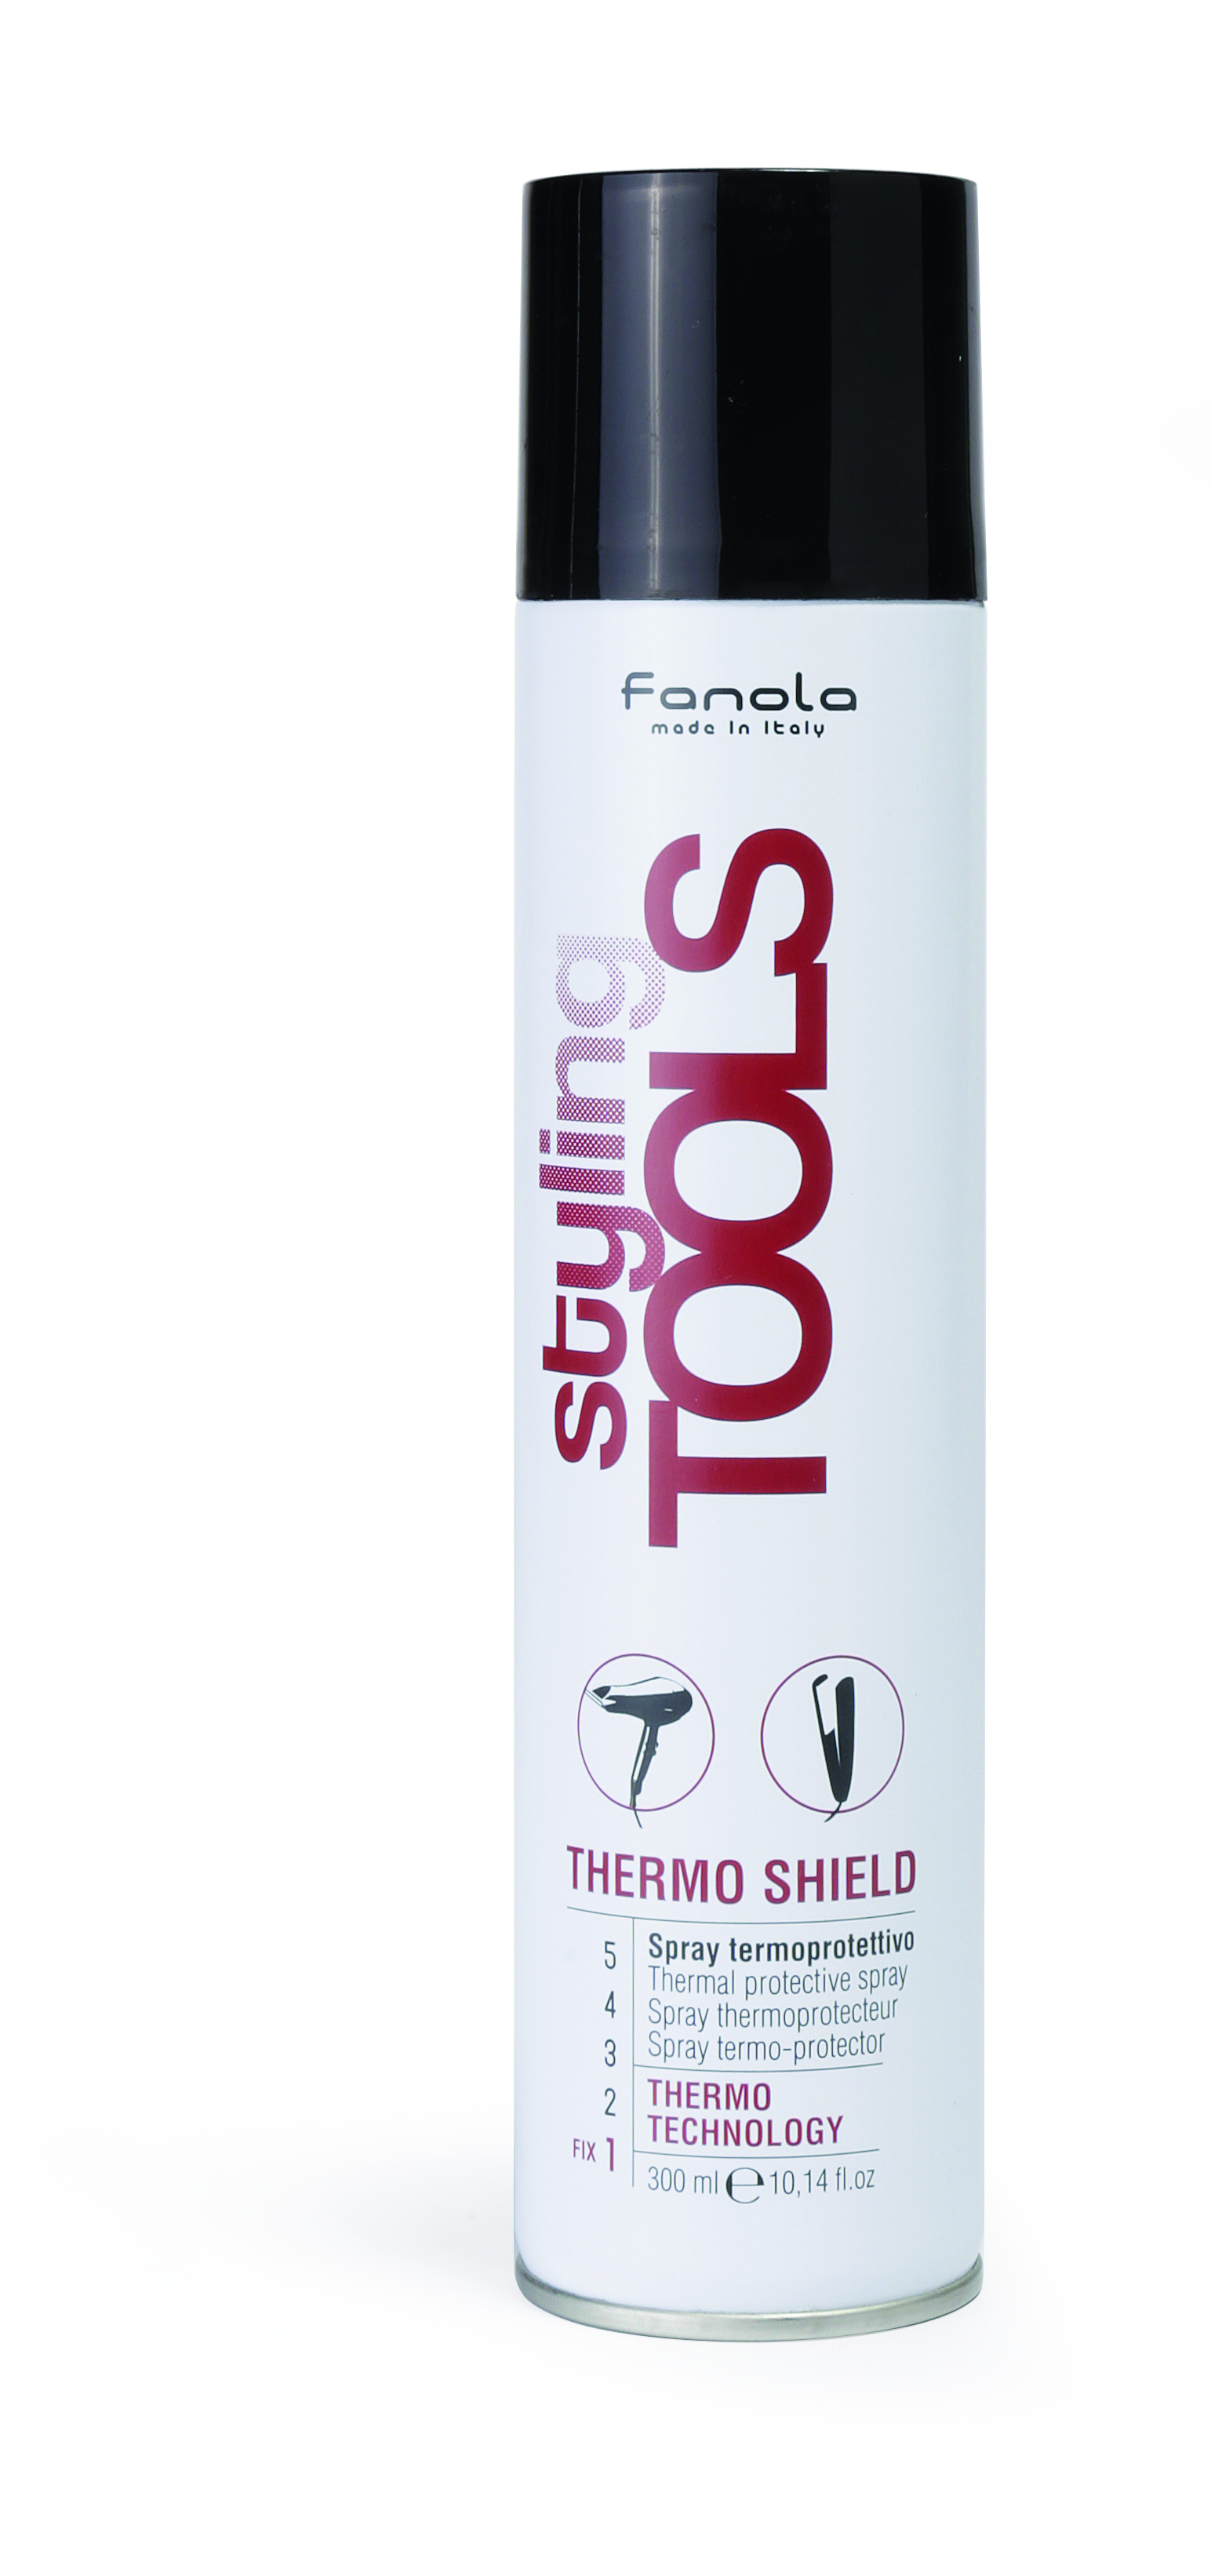 Fanola Styling Tools Thermo Shield - sprej pre termoochranu, 300 ml